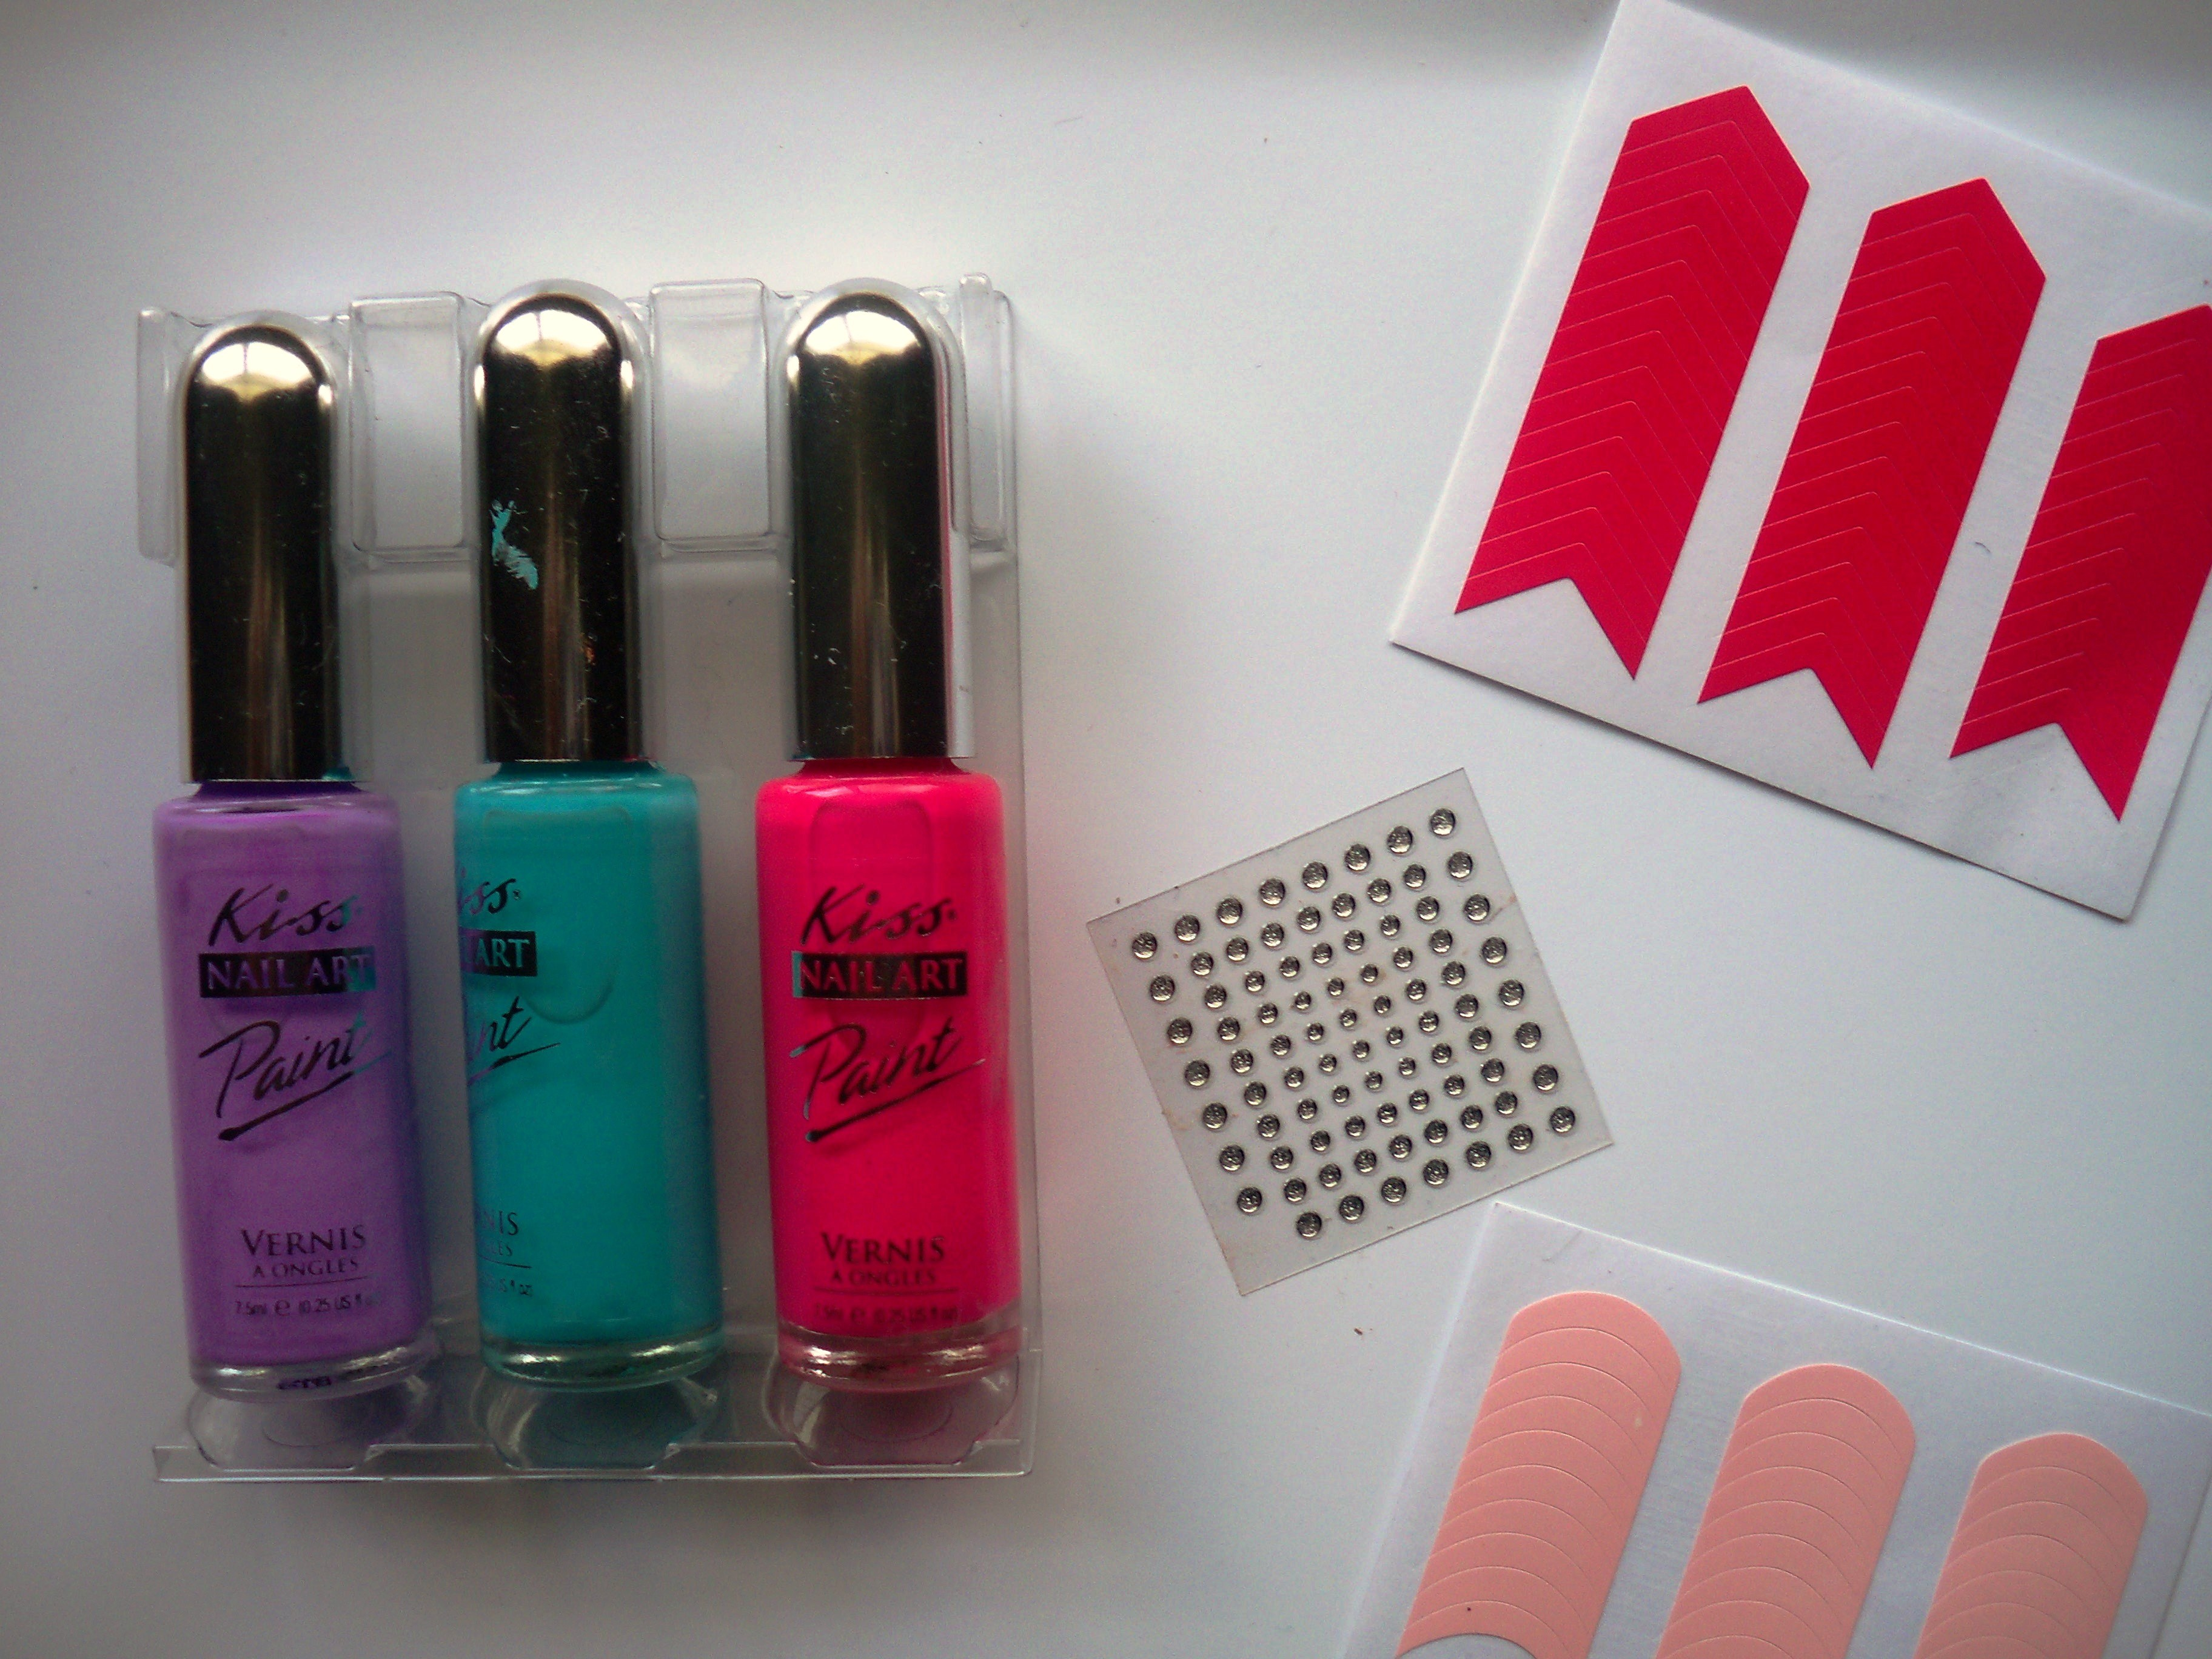 kiss nail artist paint and stencil kit instructions